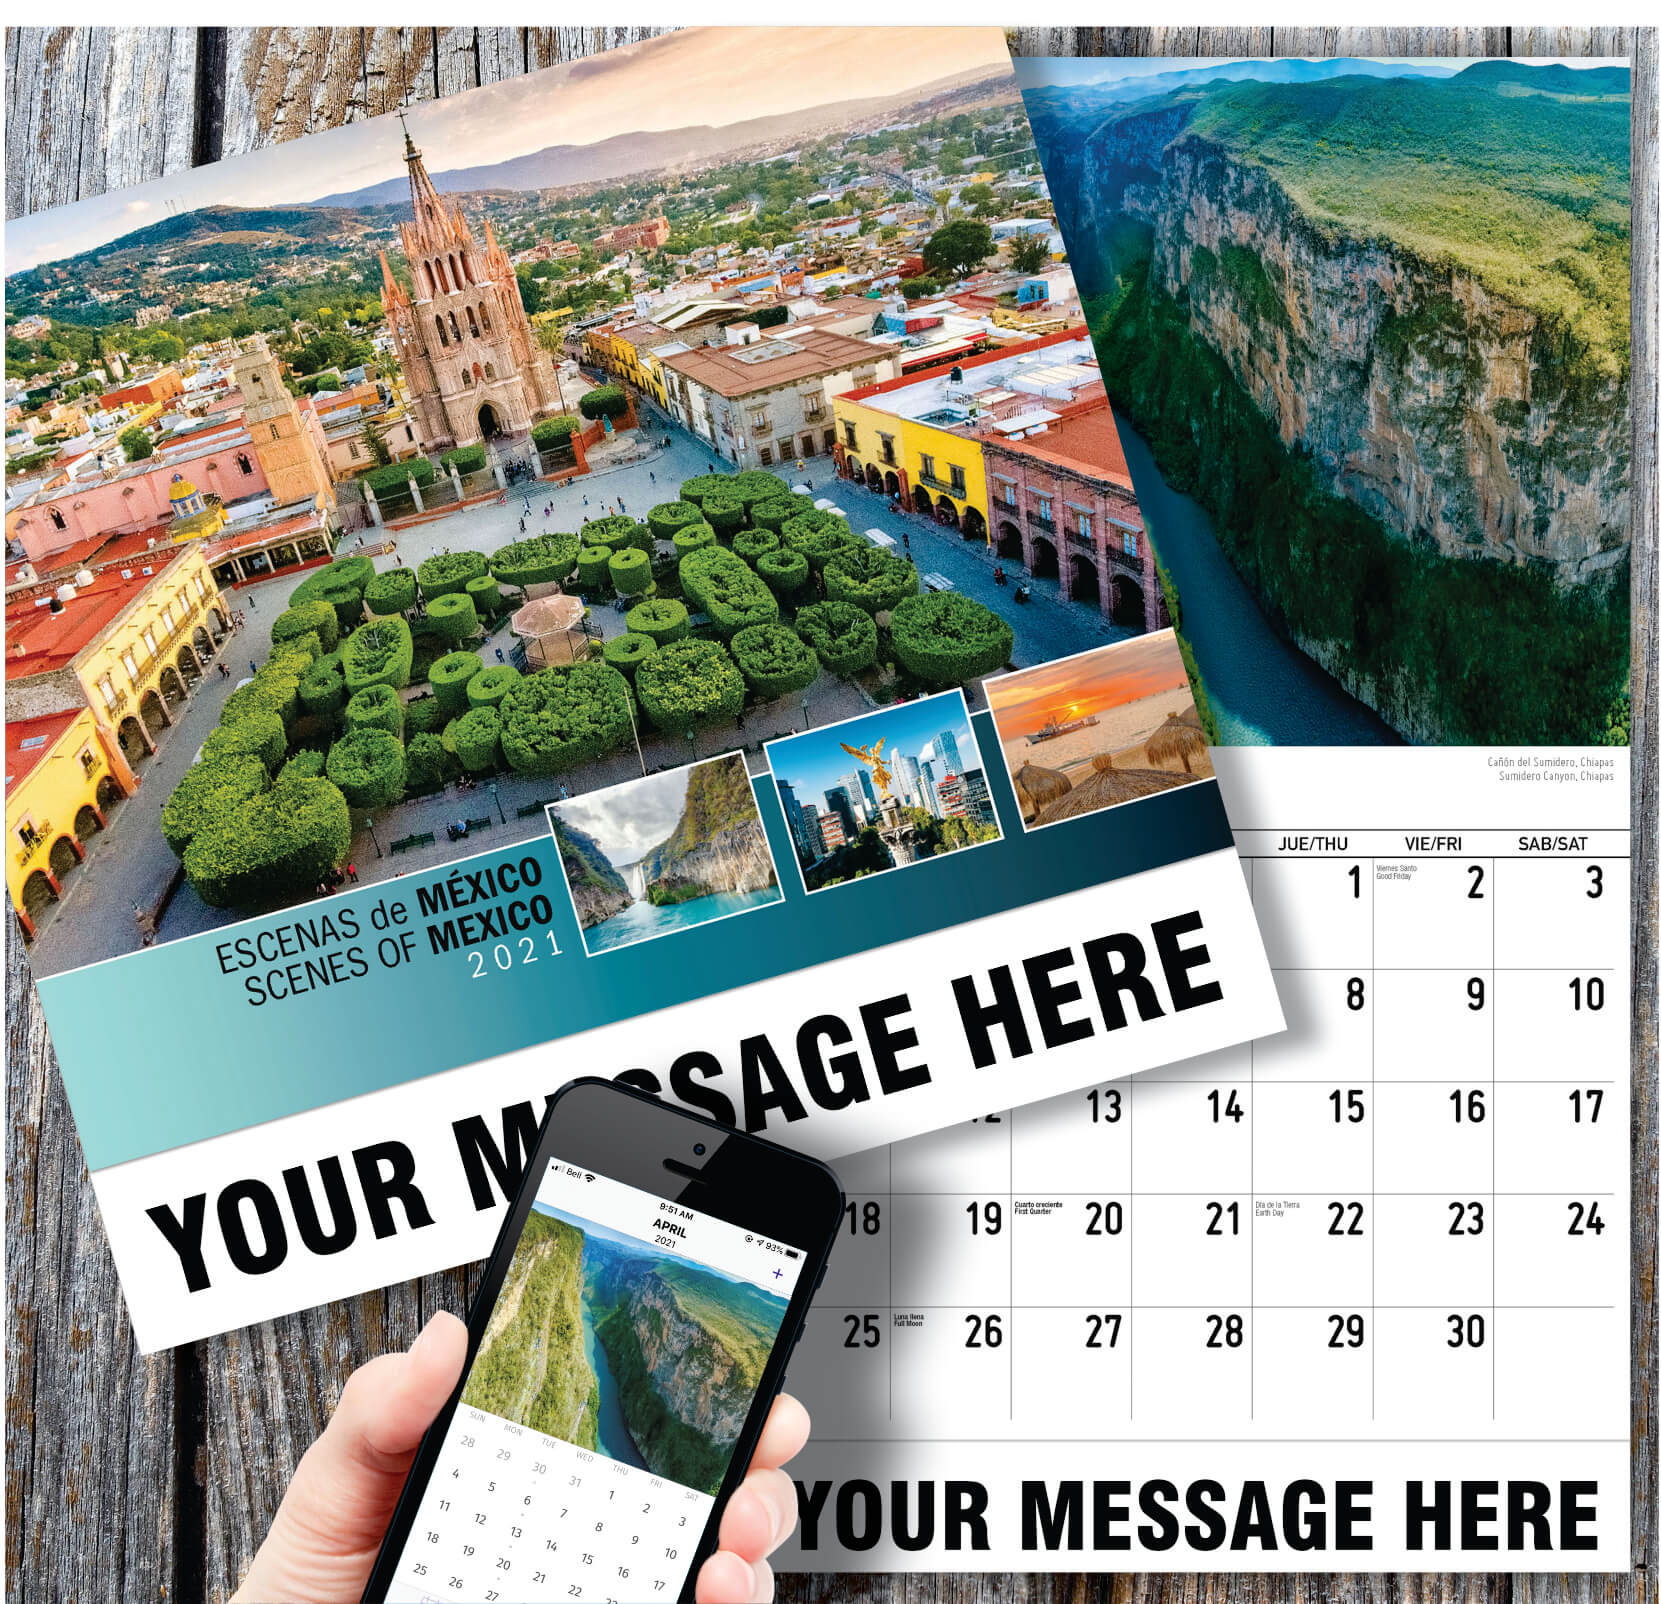 Scenes Of Mexico Spanish English 2021 Promotional Calendar Pertaining To Mexican Calendars With Day Suggested Names